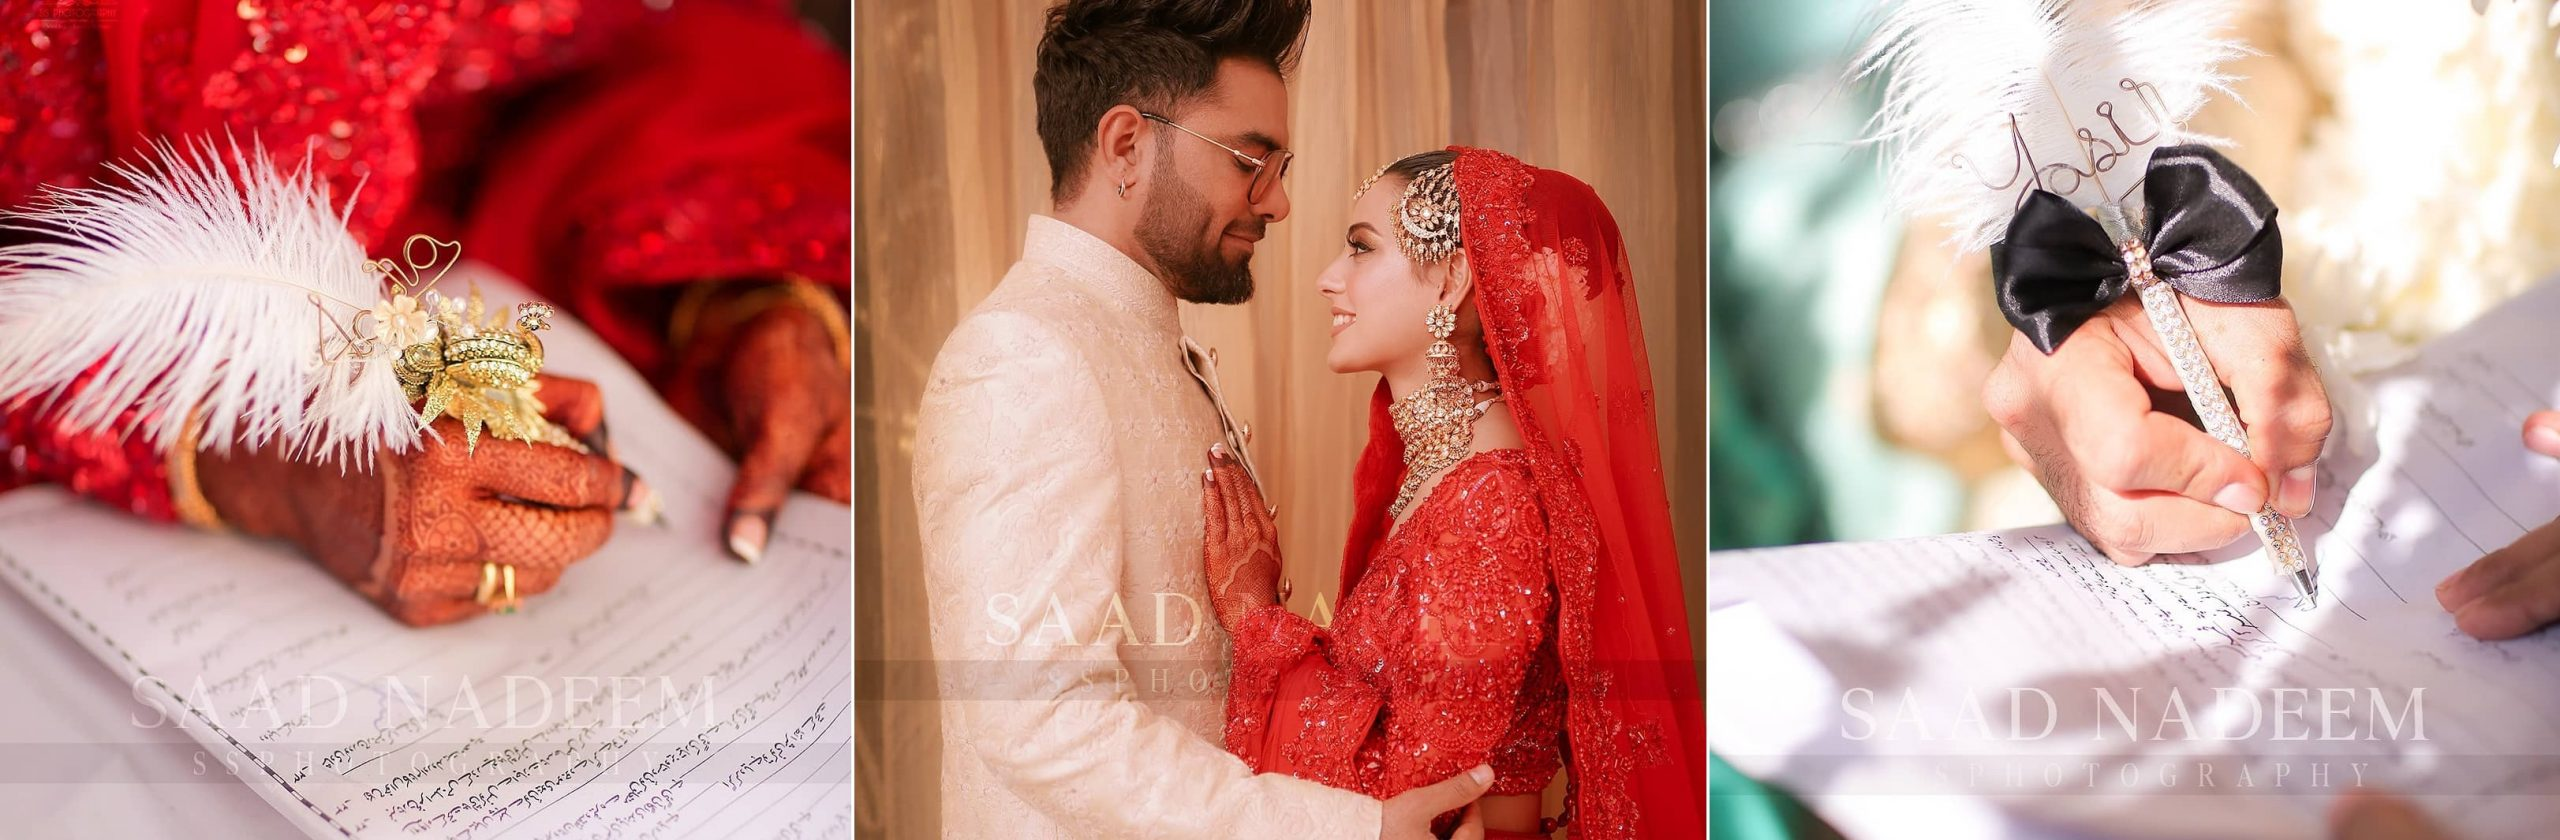 Iqra Aziz and Yasir Hussain Wedding Pictures (1)